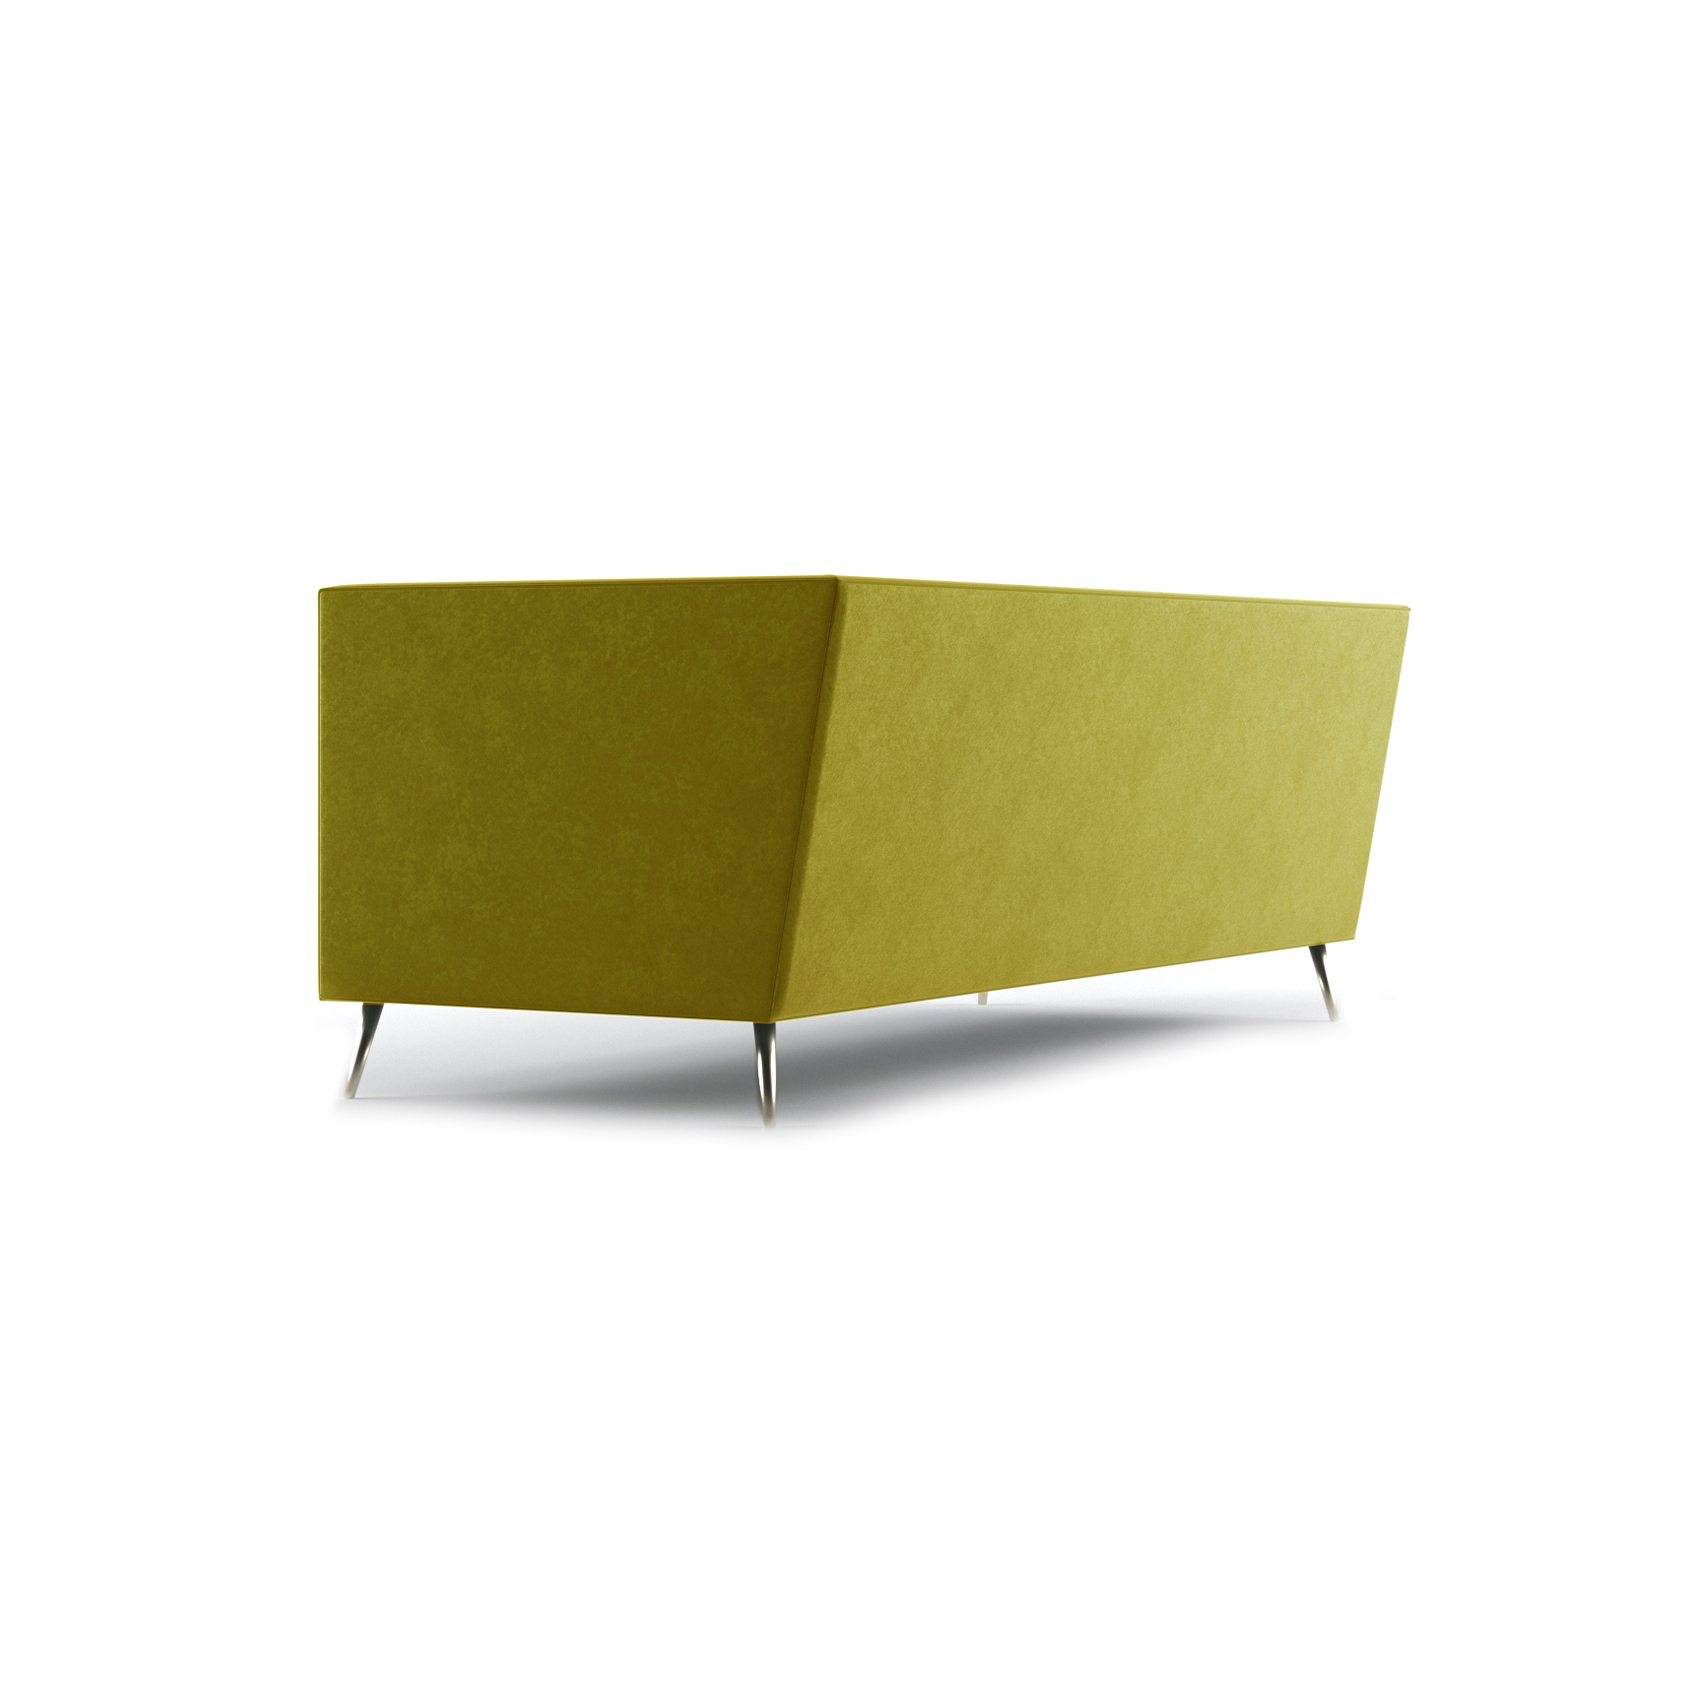 Connick Three and a Half Seater Sofa by Bonham & Bonham Gold 05